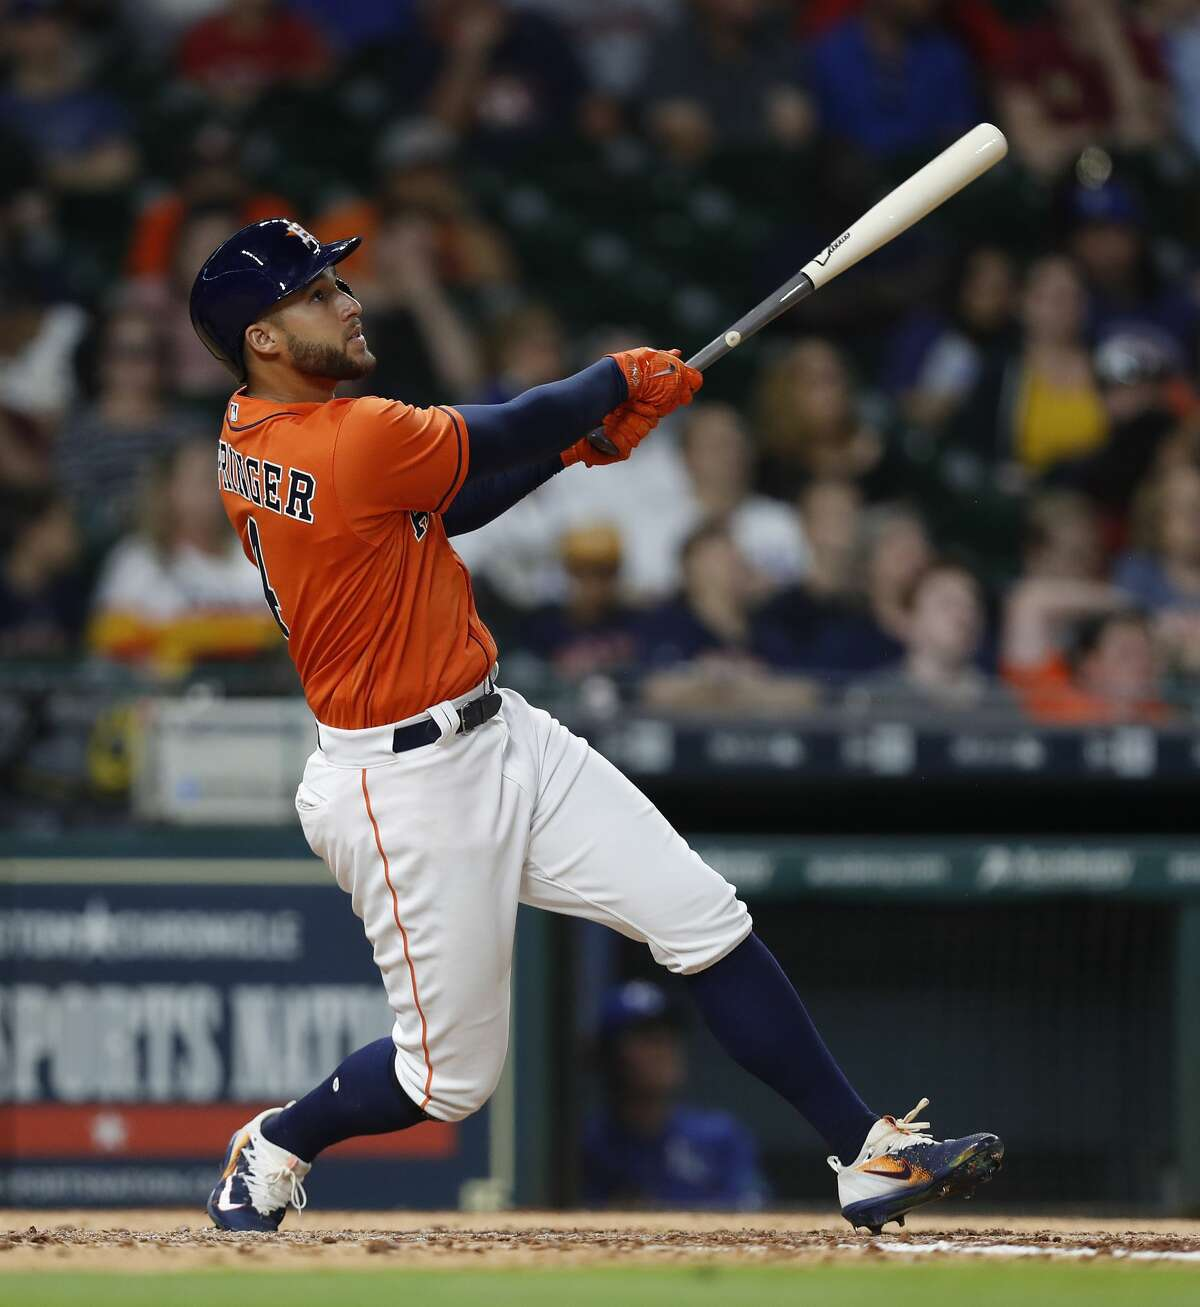 Houston Astros George Springer (4) watches his ball fly out to Kansas City Royals center fielder Lorenzo Cain (6) in the eighth inning of an MLB baseball game at Minute Maid Park, Friday, April 7, 2017, in Houston. ( Karen Warren / Houston Chronicle )